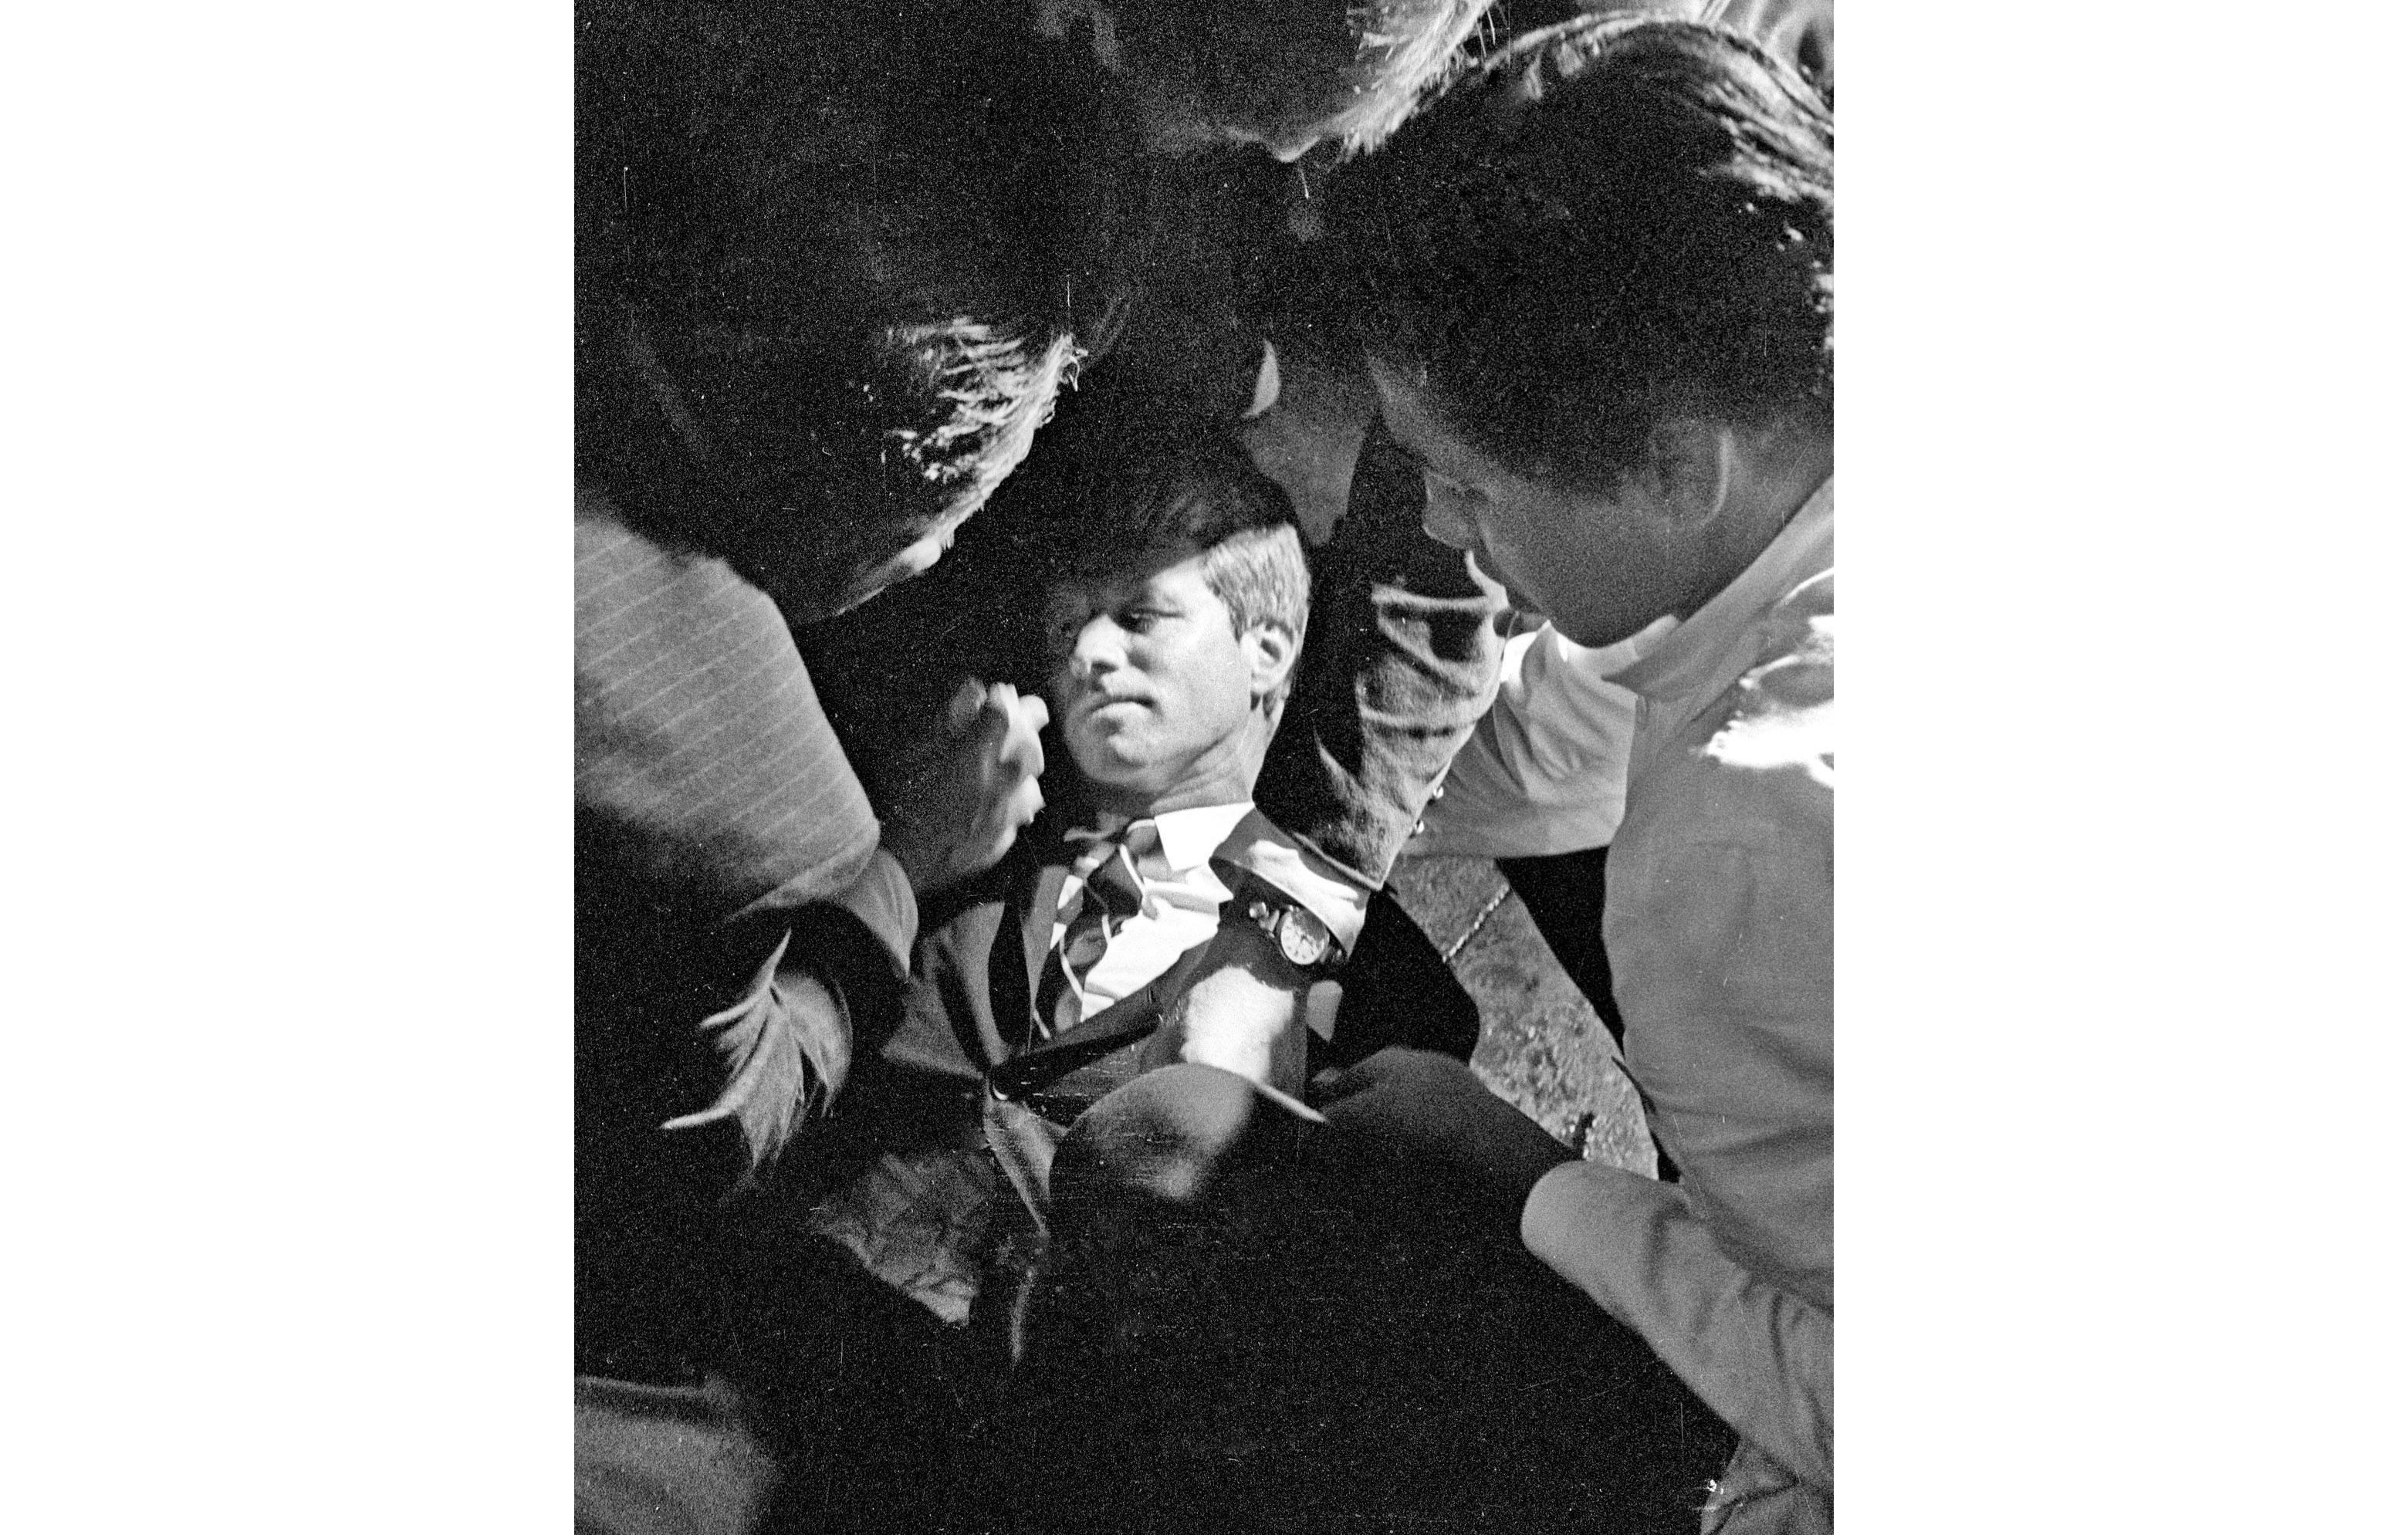 busboy who comforted robert kennedy after he was shot dies